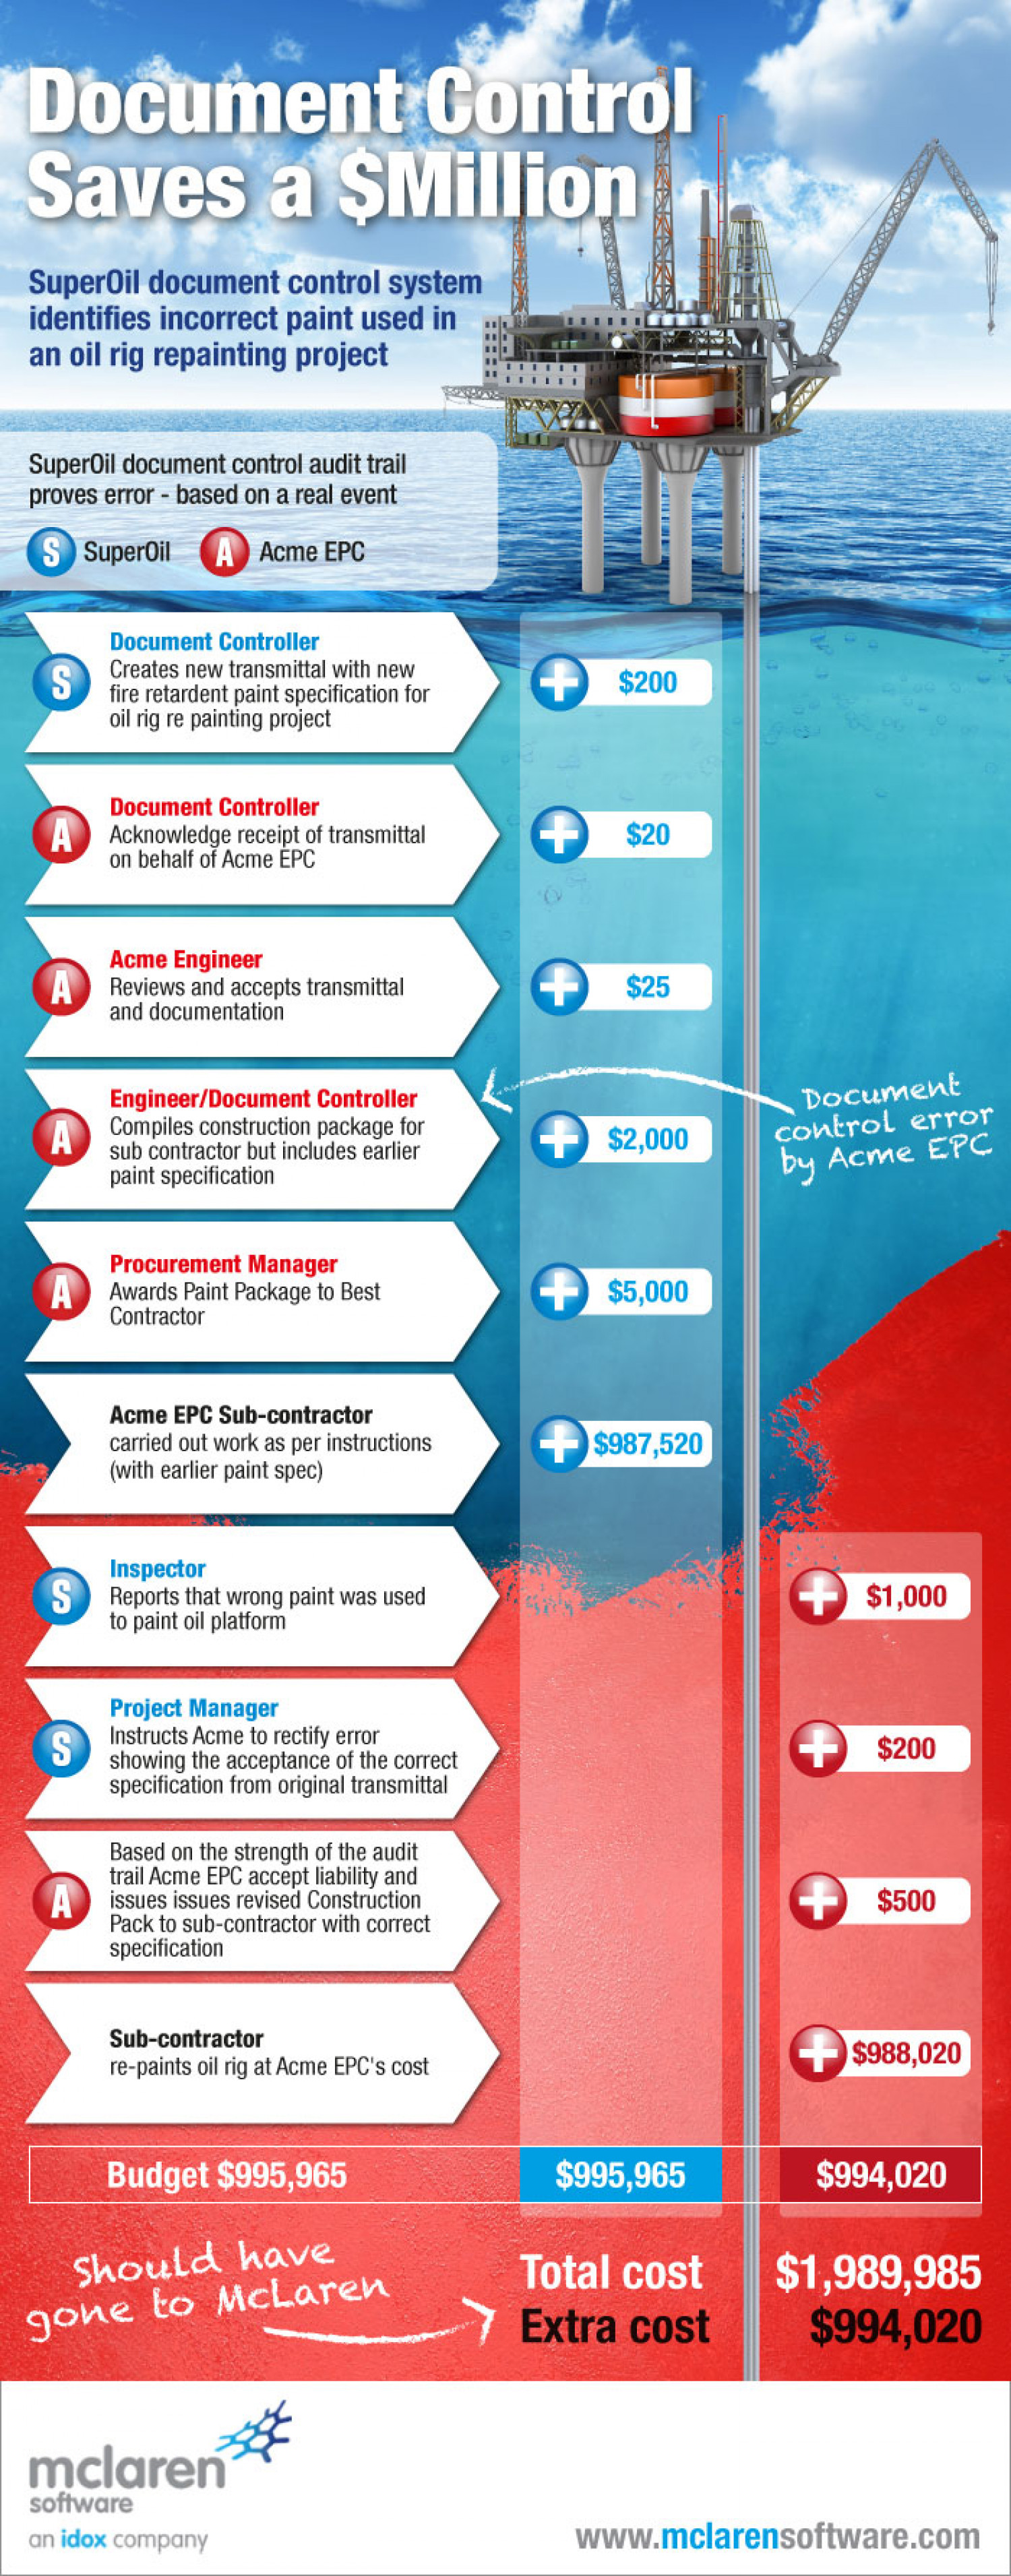 Document Control Saves a Million Infographic